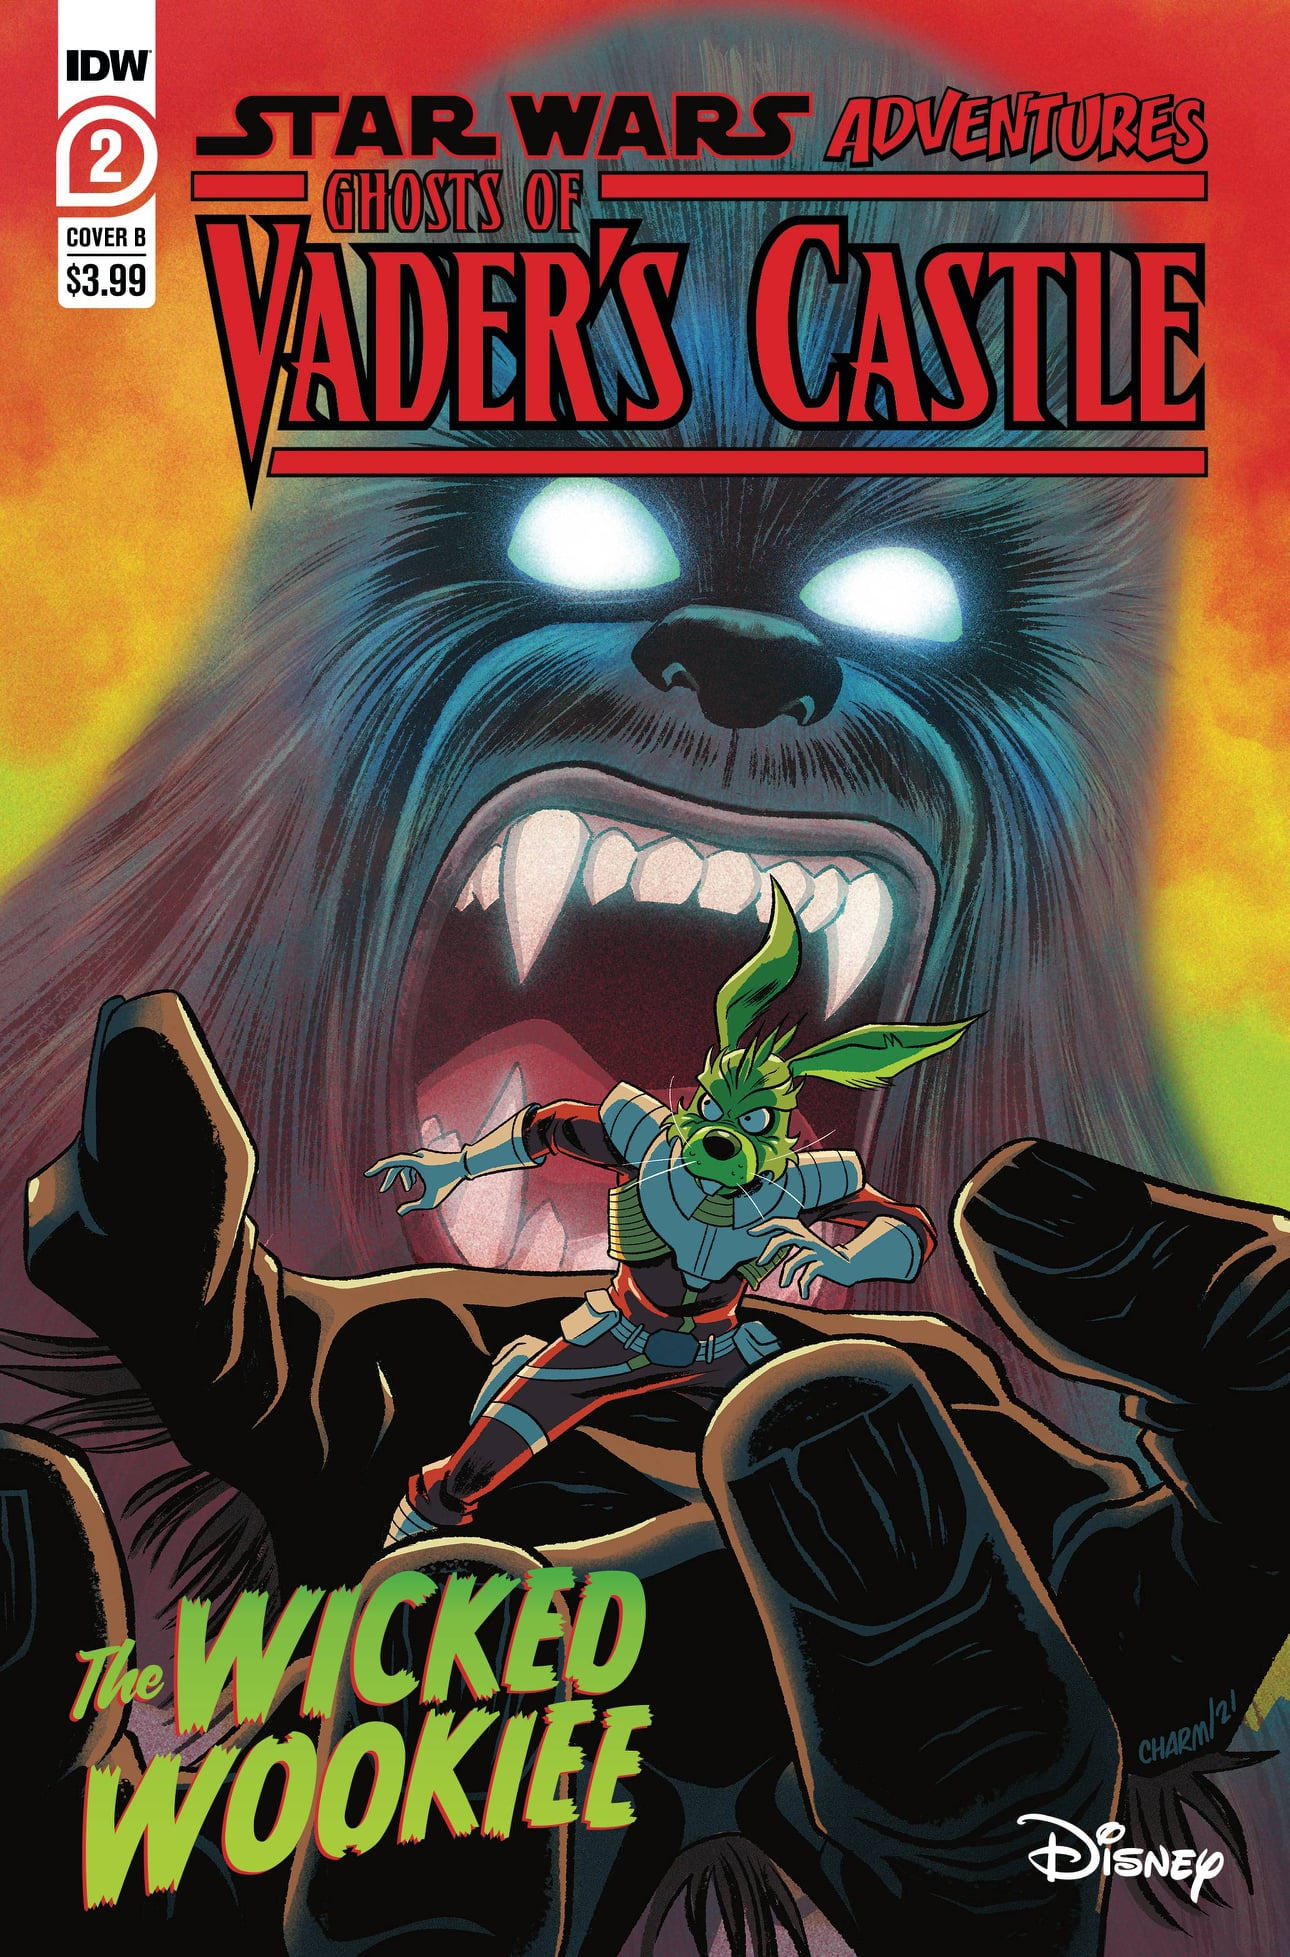 Star Wars Adventures: Ghosts of Vader's Castle 2 - Cover B